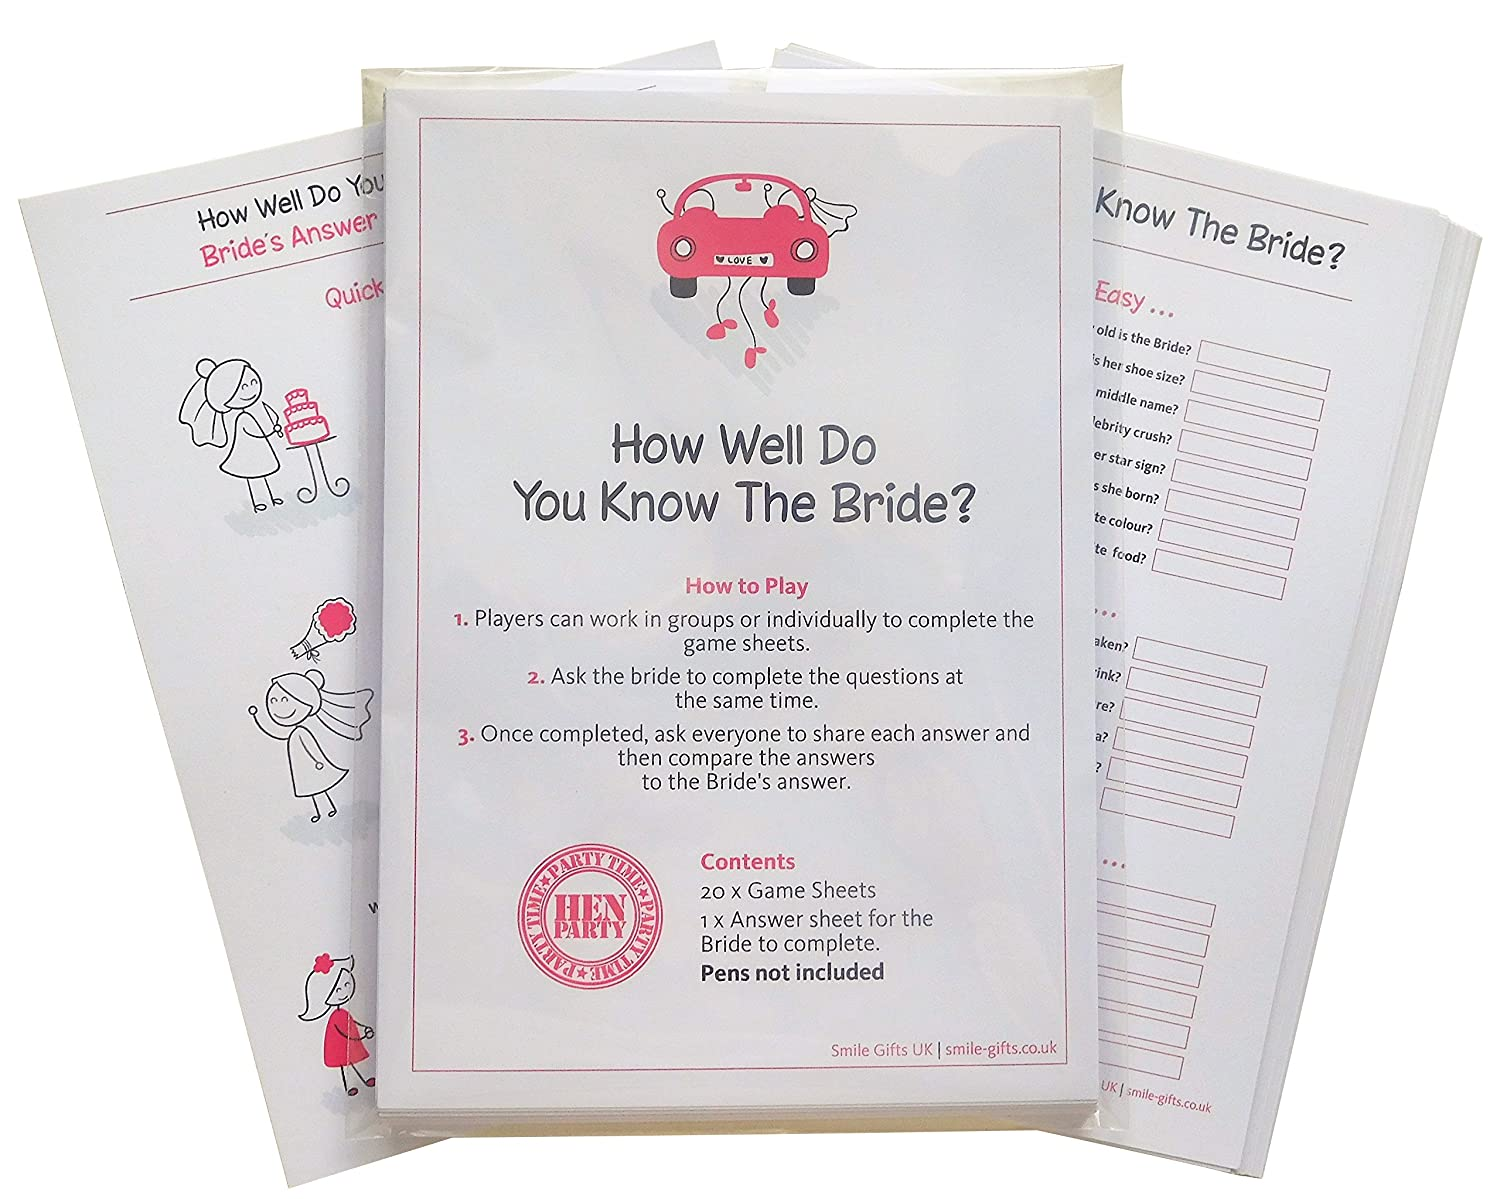 SMILE GIFTS UK How Well Do You Know The Bride? Quiz Game including 20 Game  Cards (plus one for the Bride)- Get your night going with Hen Party Games,